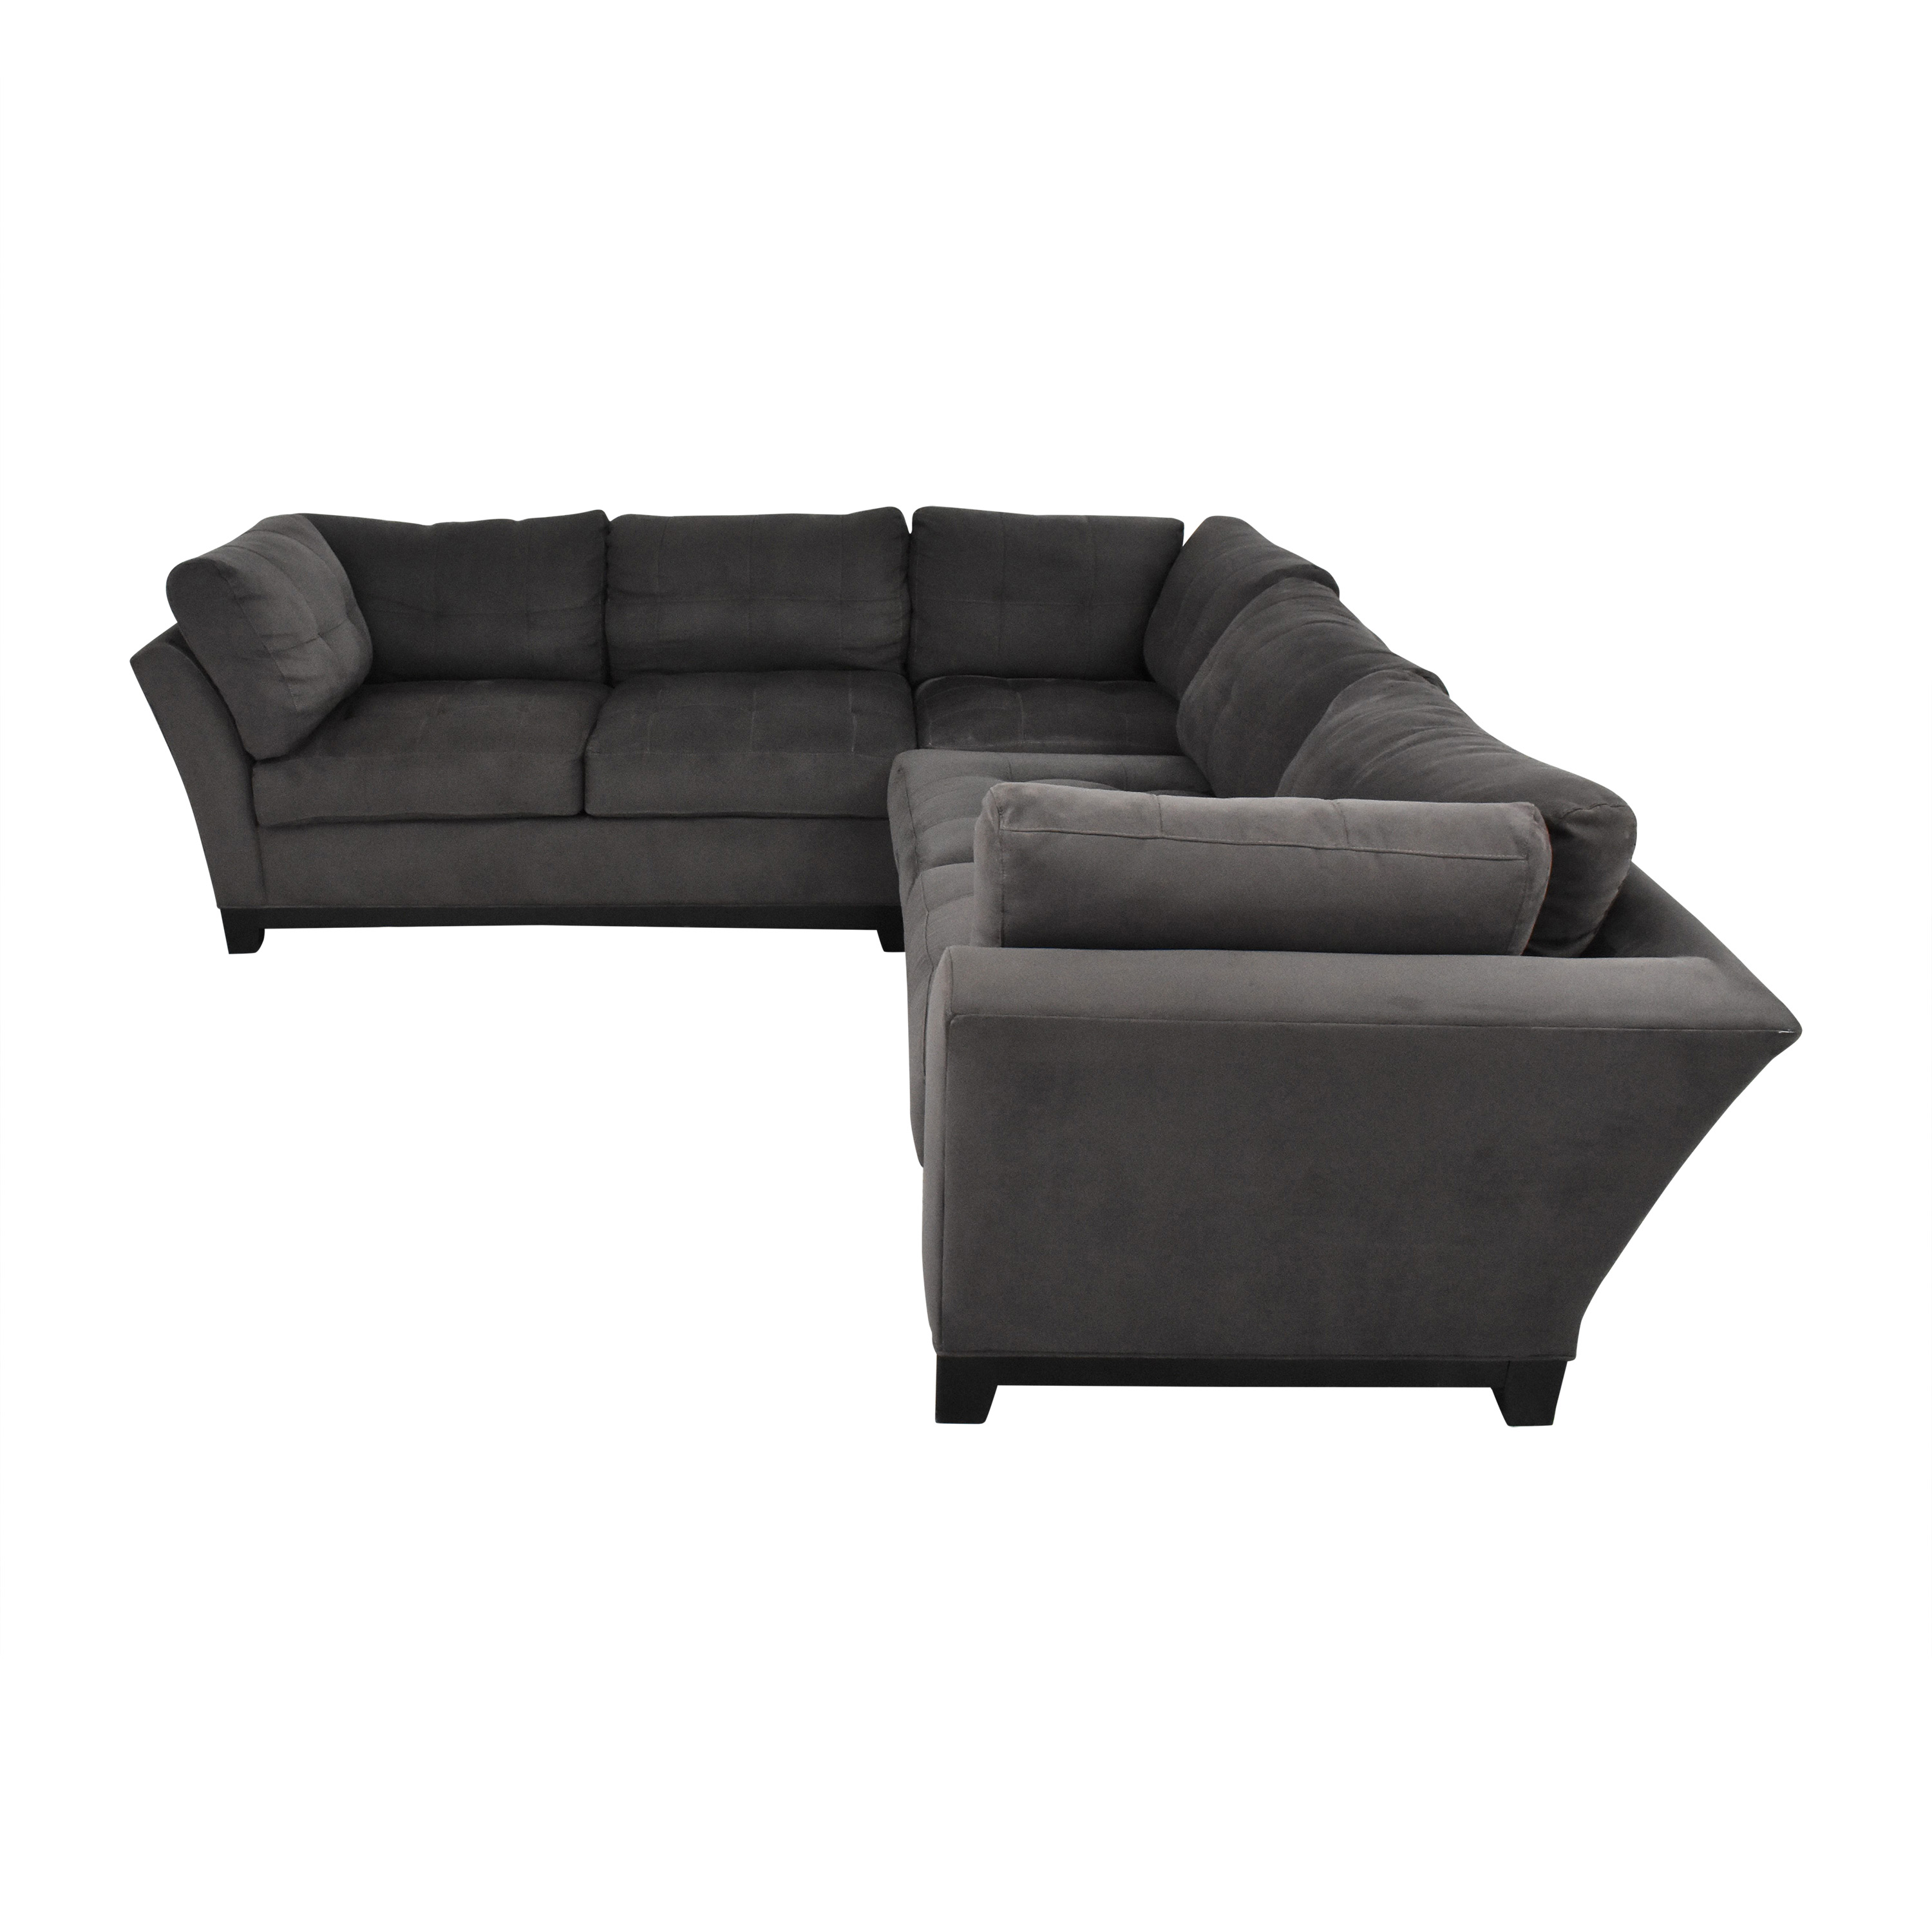 Cindy Crawford Home Cindy Crawford Home Metropolis Three Piece Sectional Sofa ct